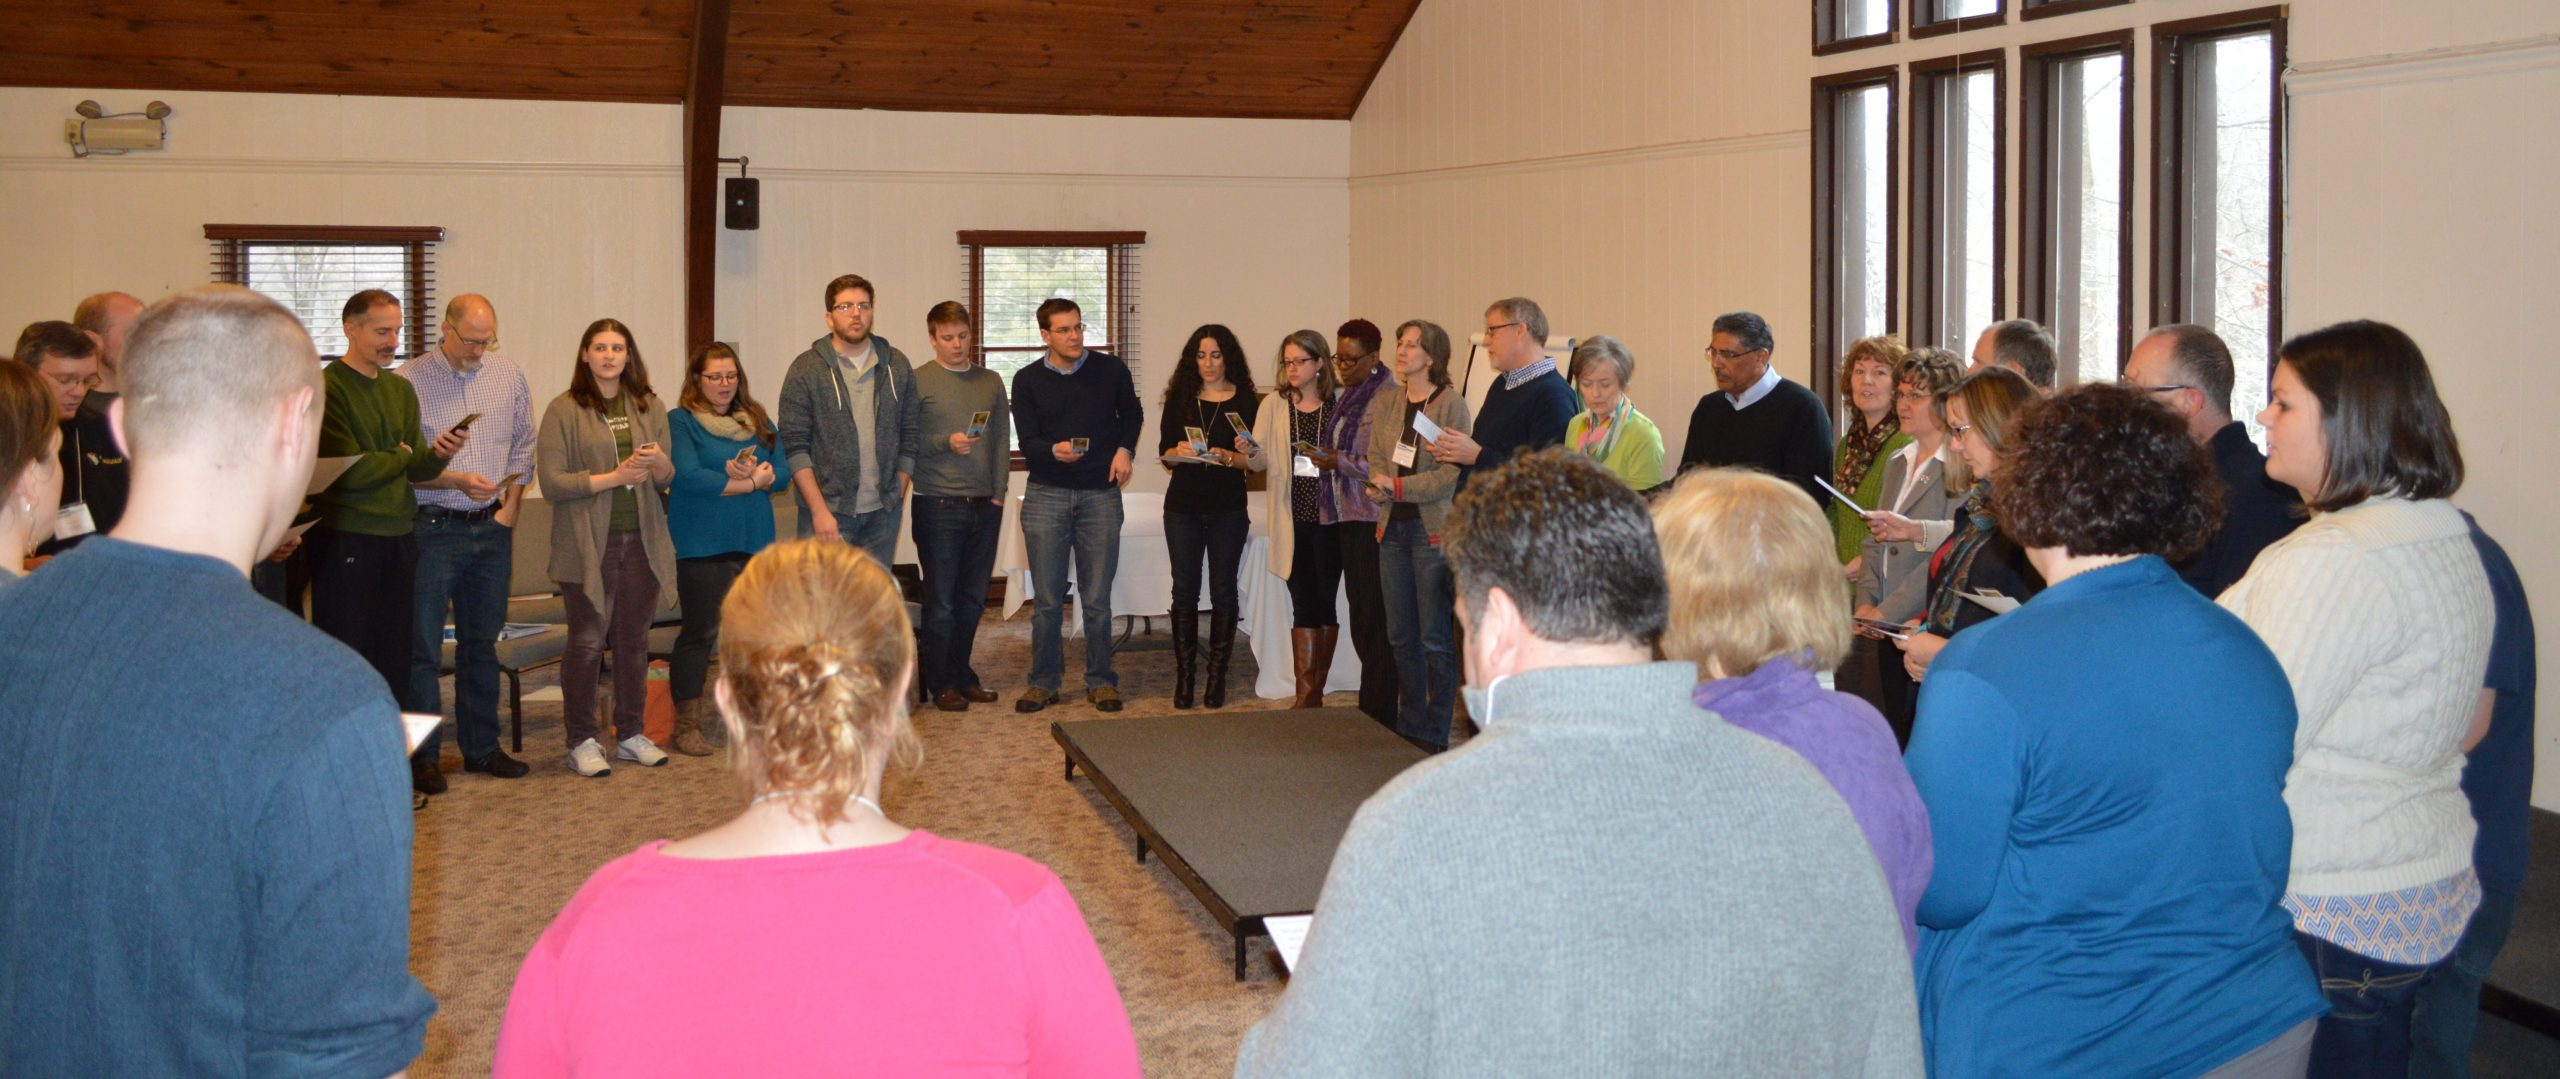 VBLP_Feb2016_Large_group_singing